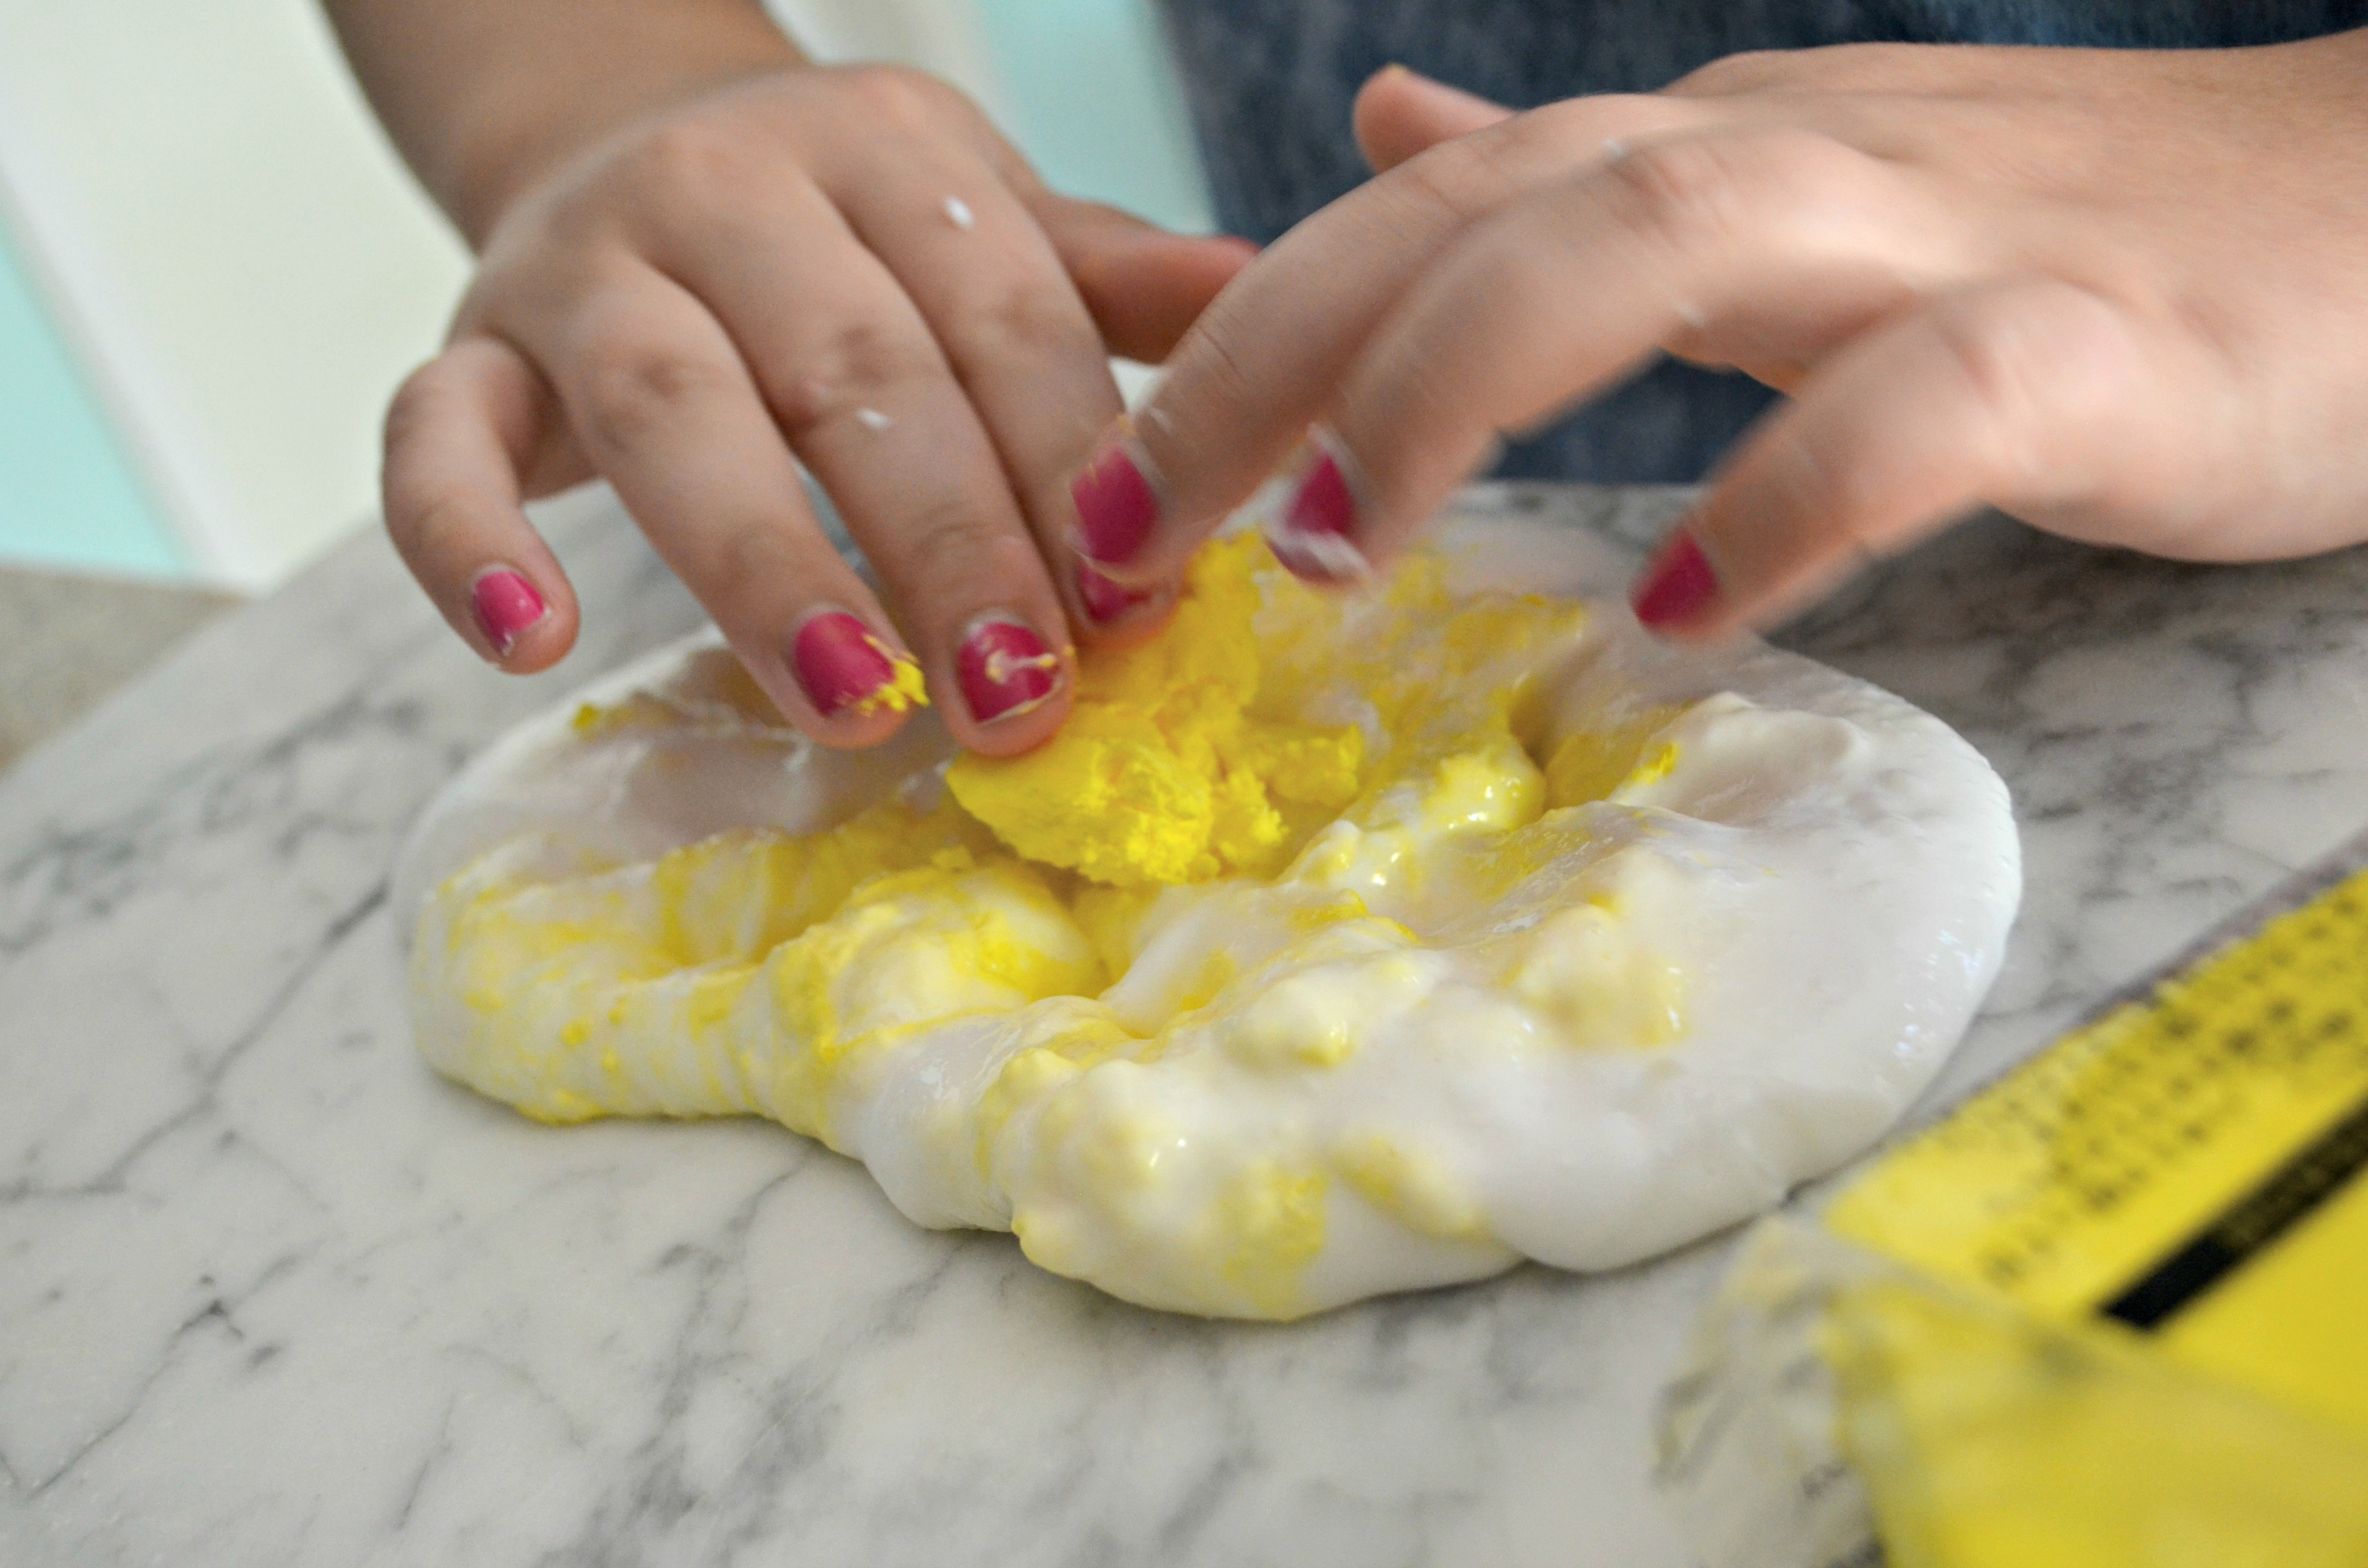 Make diy butter slime using clay – Adding in clay